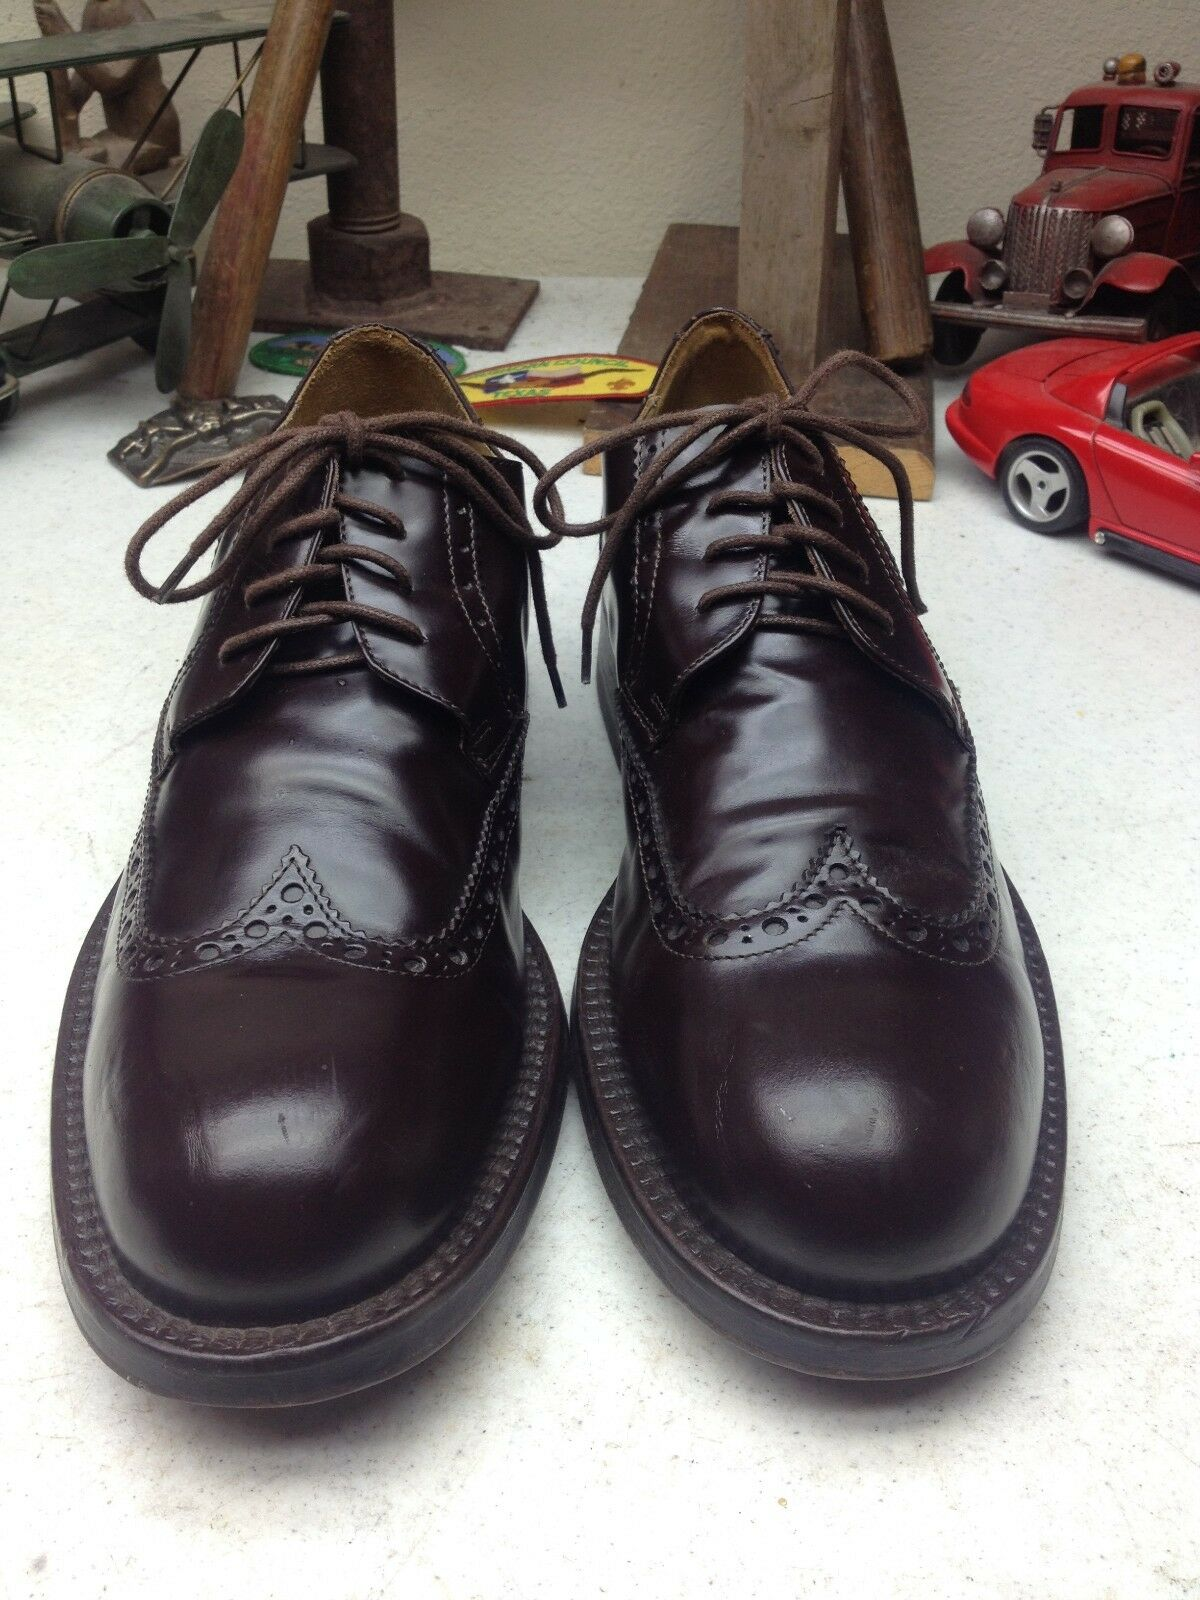 KENNETH COLE ITALIAN DARK BROWN CORDOVAN OXFORD WING TIP POWER SHOES 10.5 D